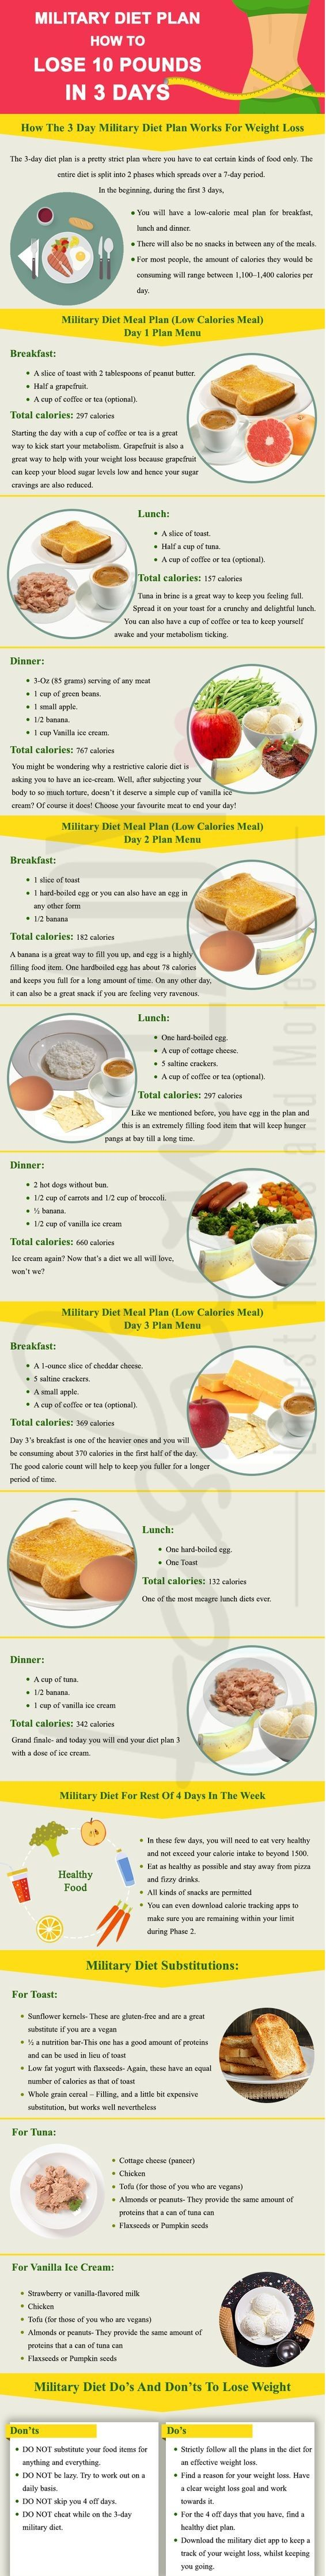 3 Day Diet Menu 3 Day Military Diet Reviews Lose 10 Pounds In 3 Days Detox How To Lose 20 Pounds In 3 Days Does Military Diet Plan Military Diet Diet Loss